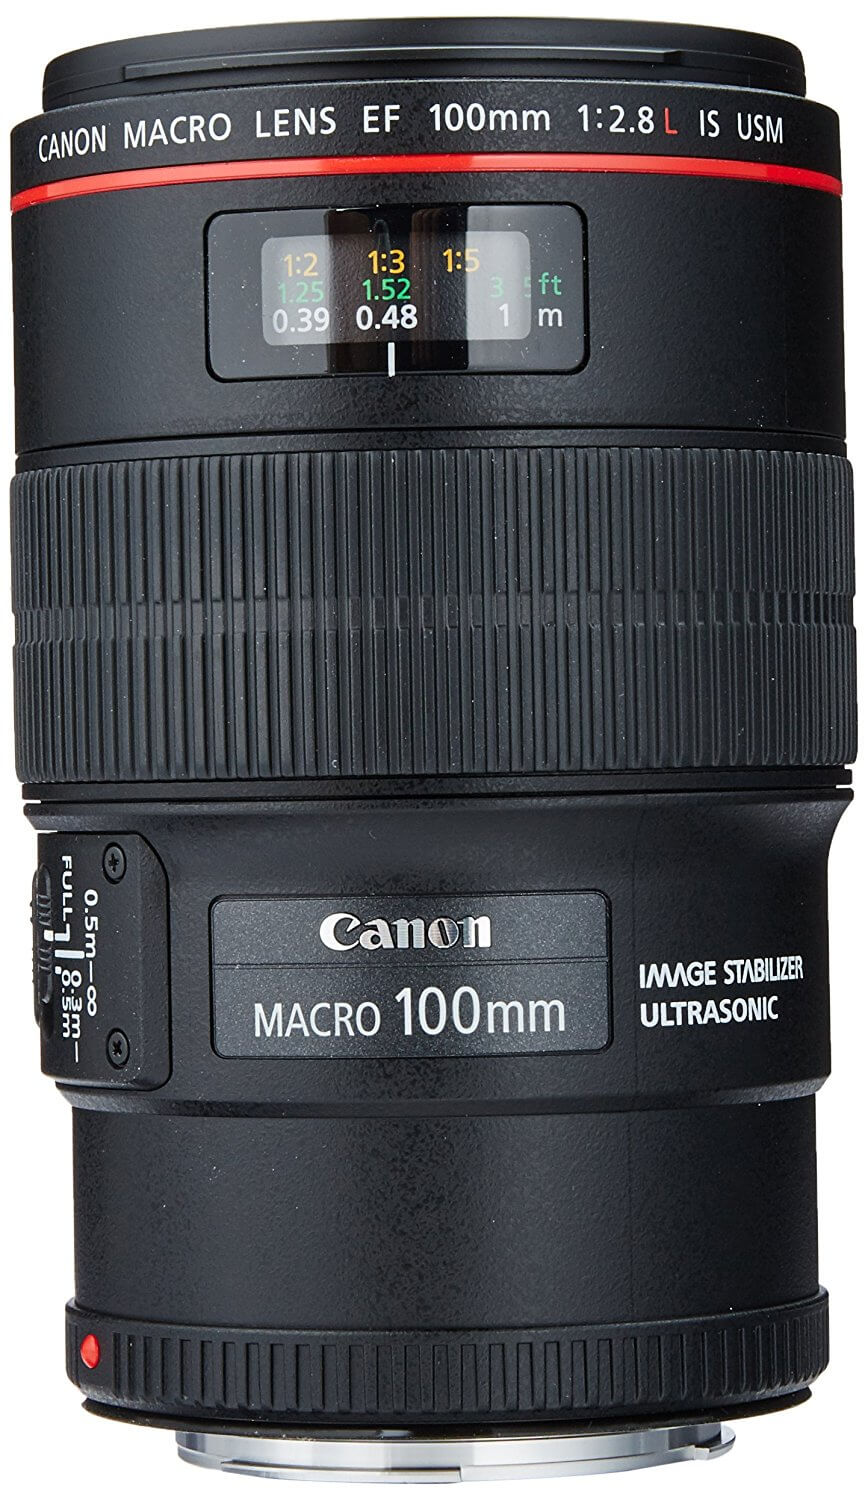 Best Canon Lenses for Portraits and Wedding Photography (Canon EF 100mm f/2.8L IS USM Macro Lens)